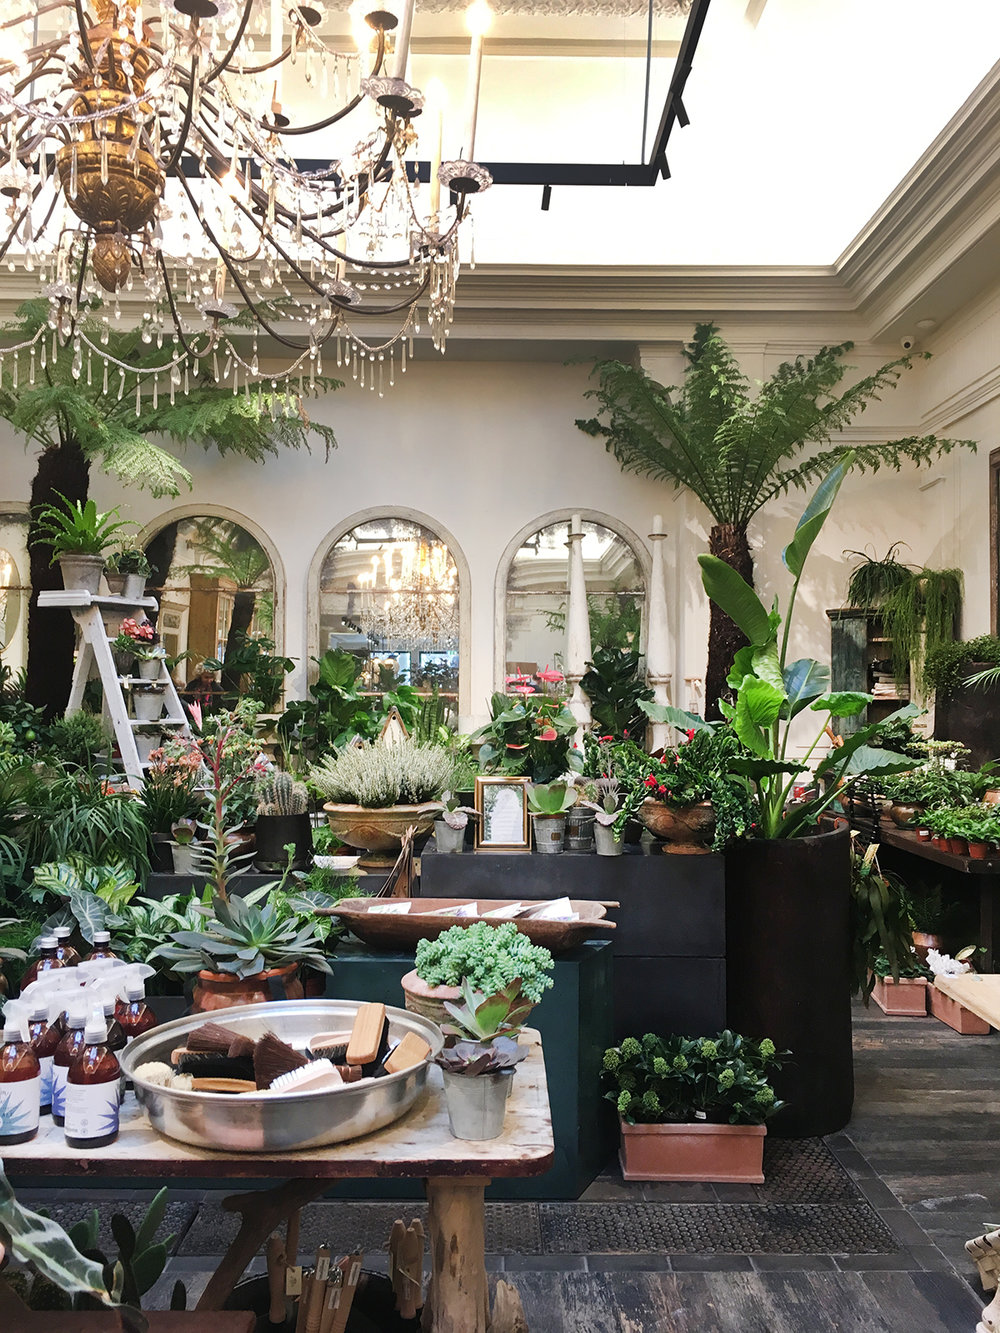 Petersham Nurseries, Covent Garden